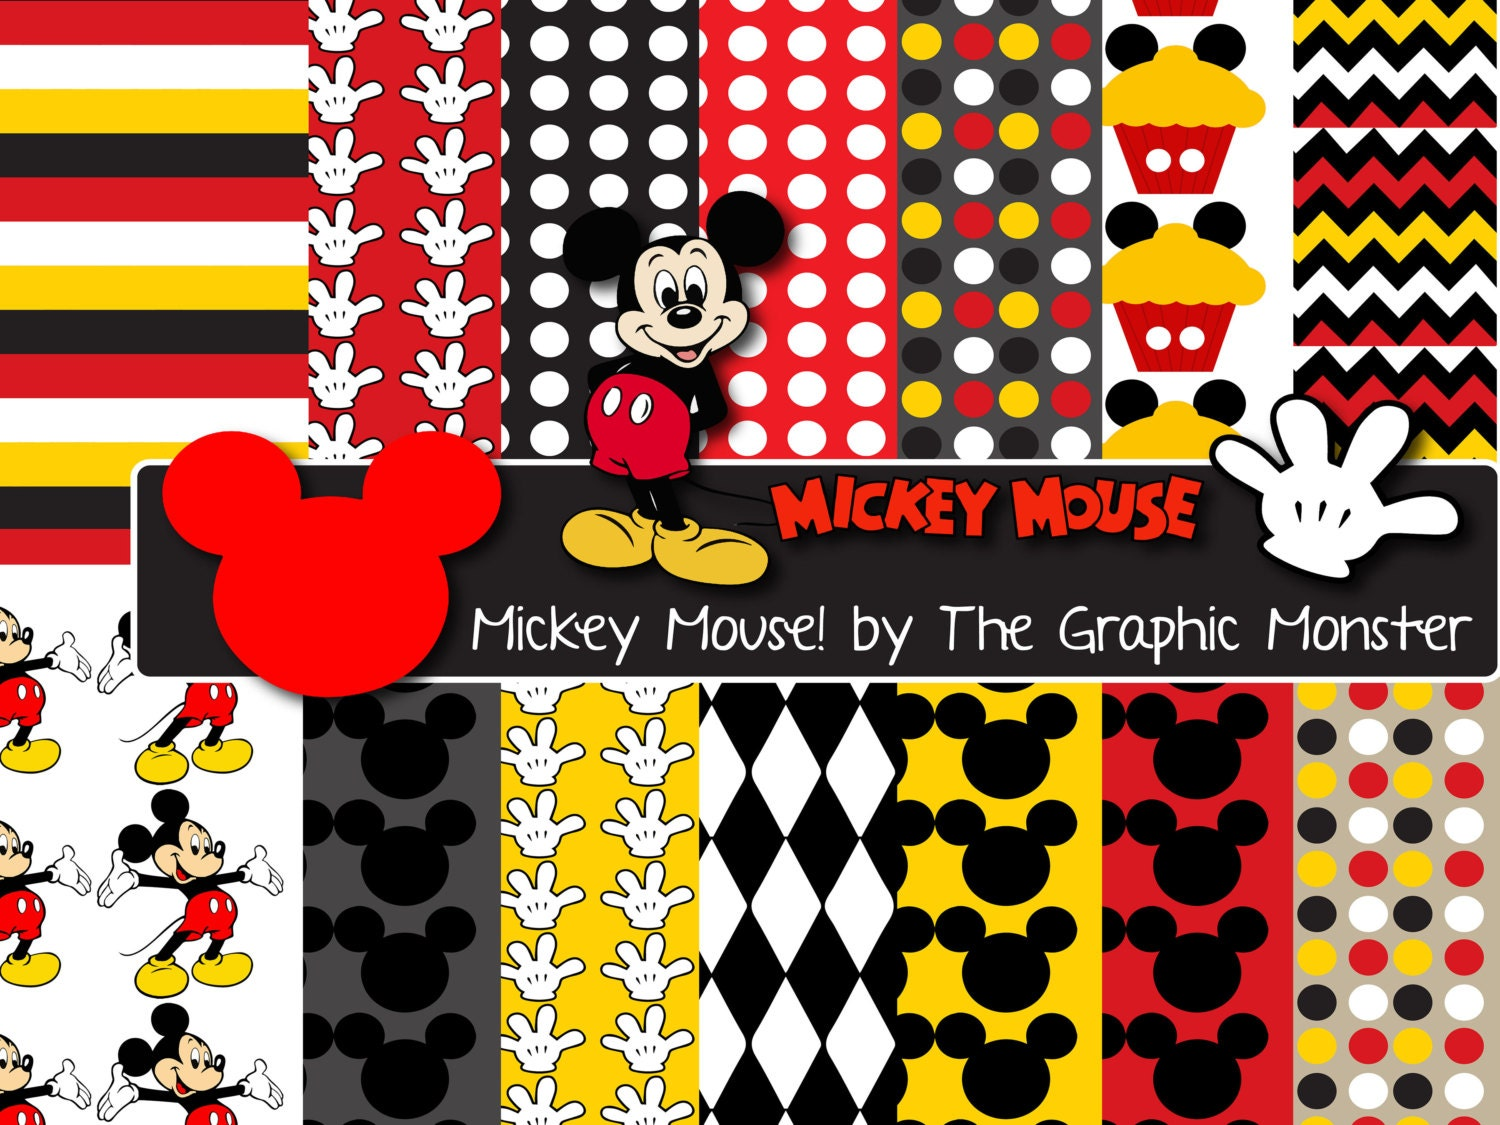 mickey mouse essay You searched for: mickey mouse paper etsy is the home to thousands of handmade, vintage, and one-of-a-kind products and gifts related to your search no matter what you're looking for or where you are in the world, our global marketplace of sellers can help you find unique and affordable options.